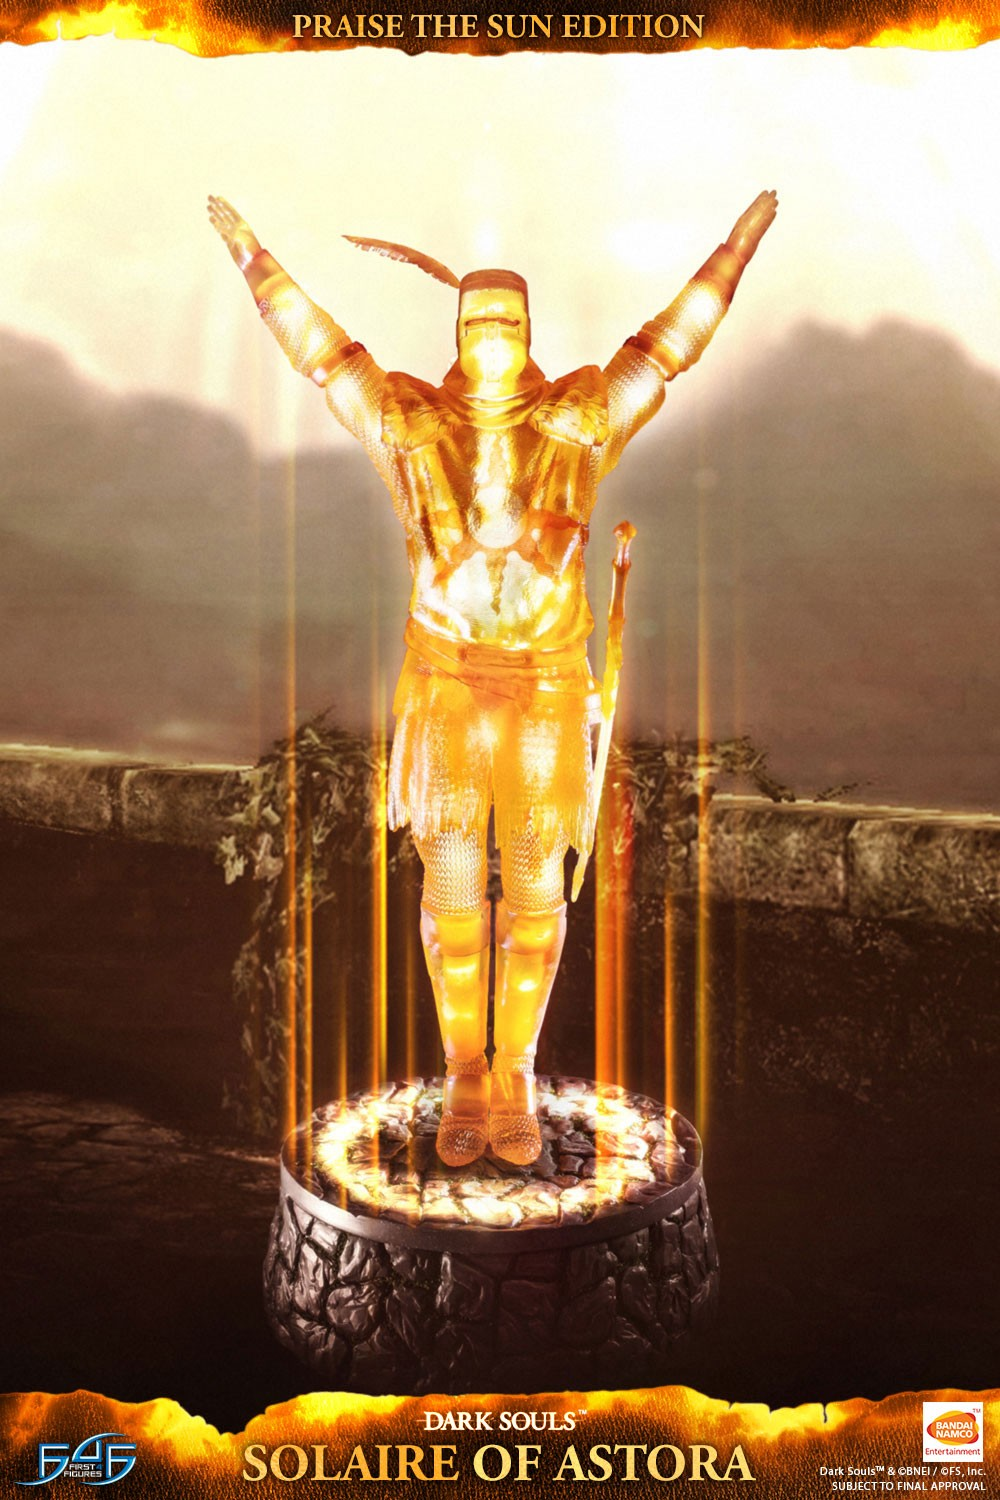 Solaire of Astora Praise The Sun Edition